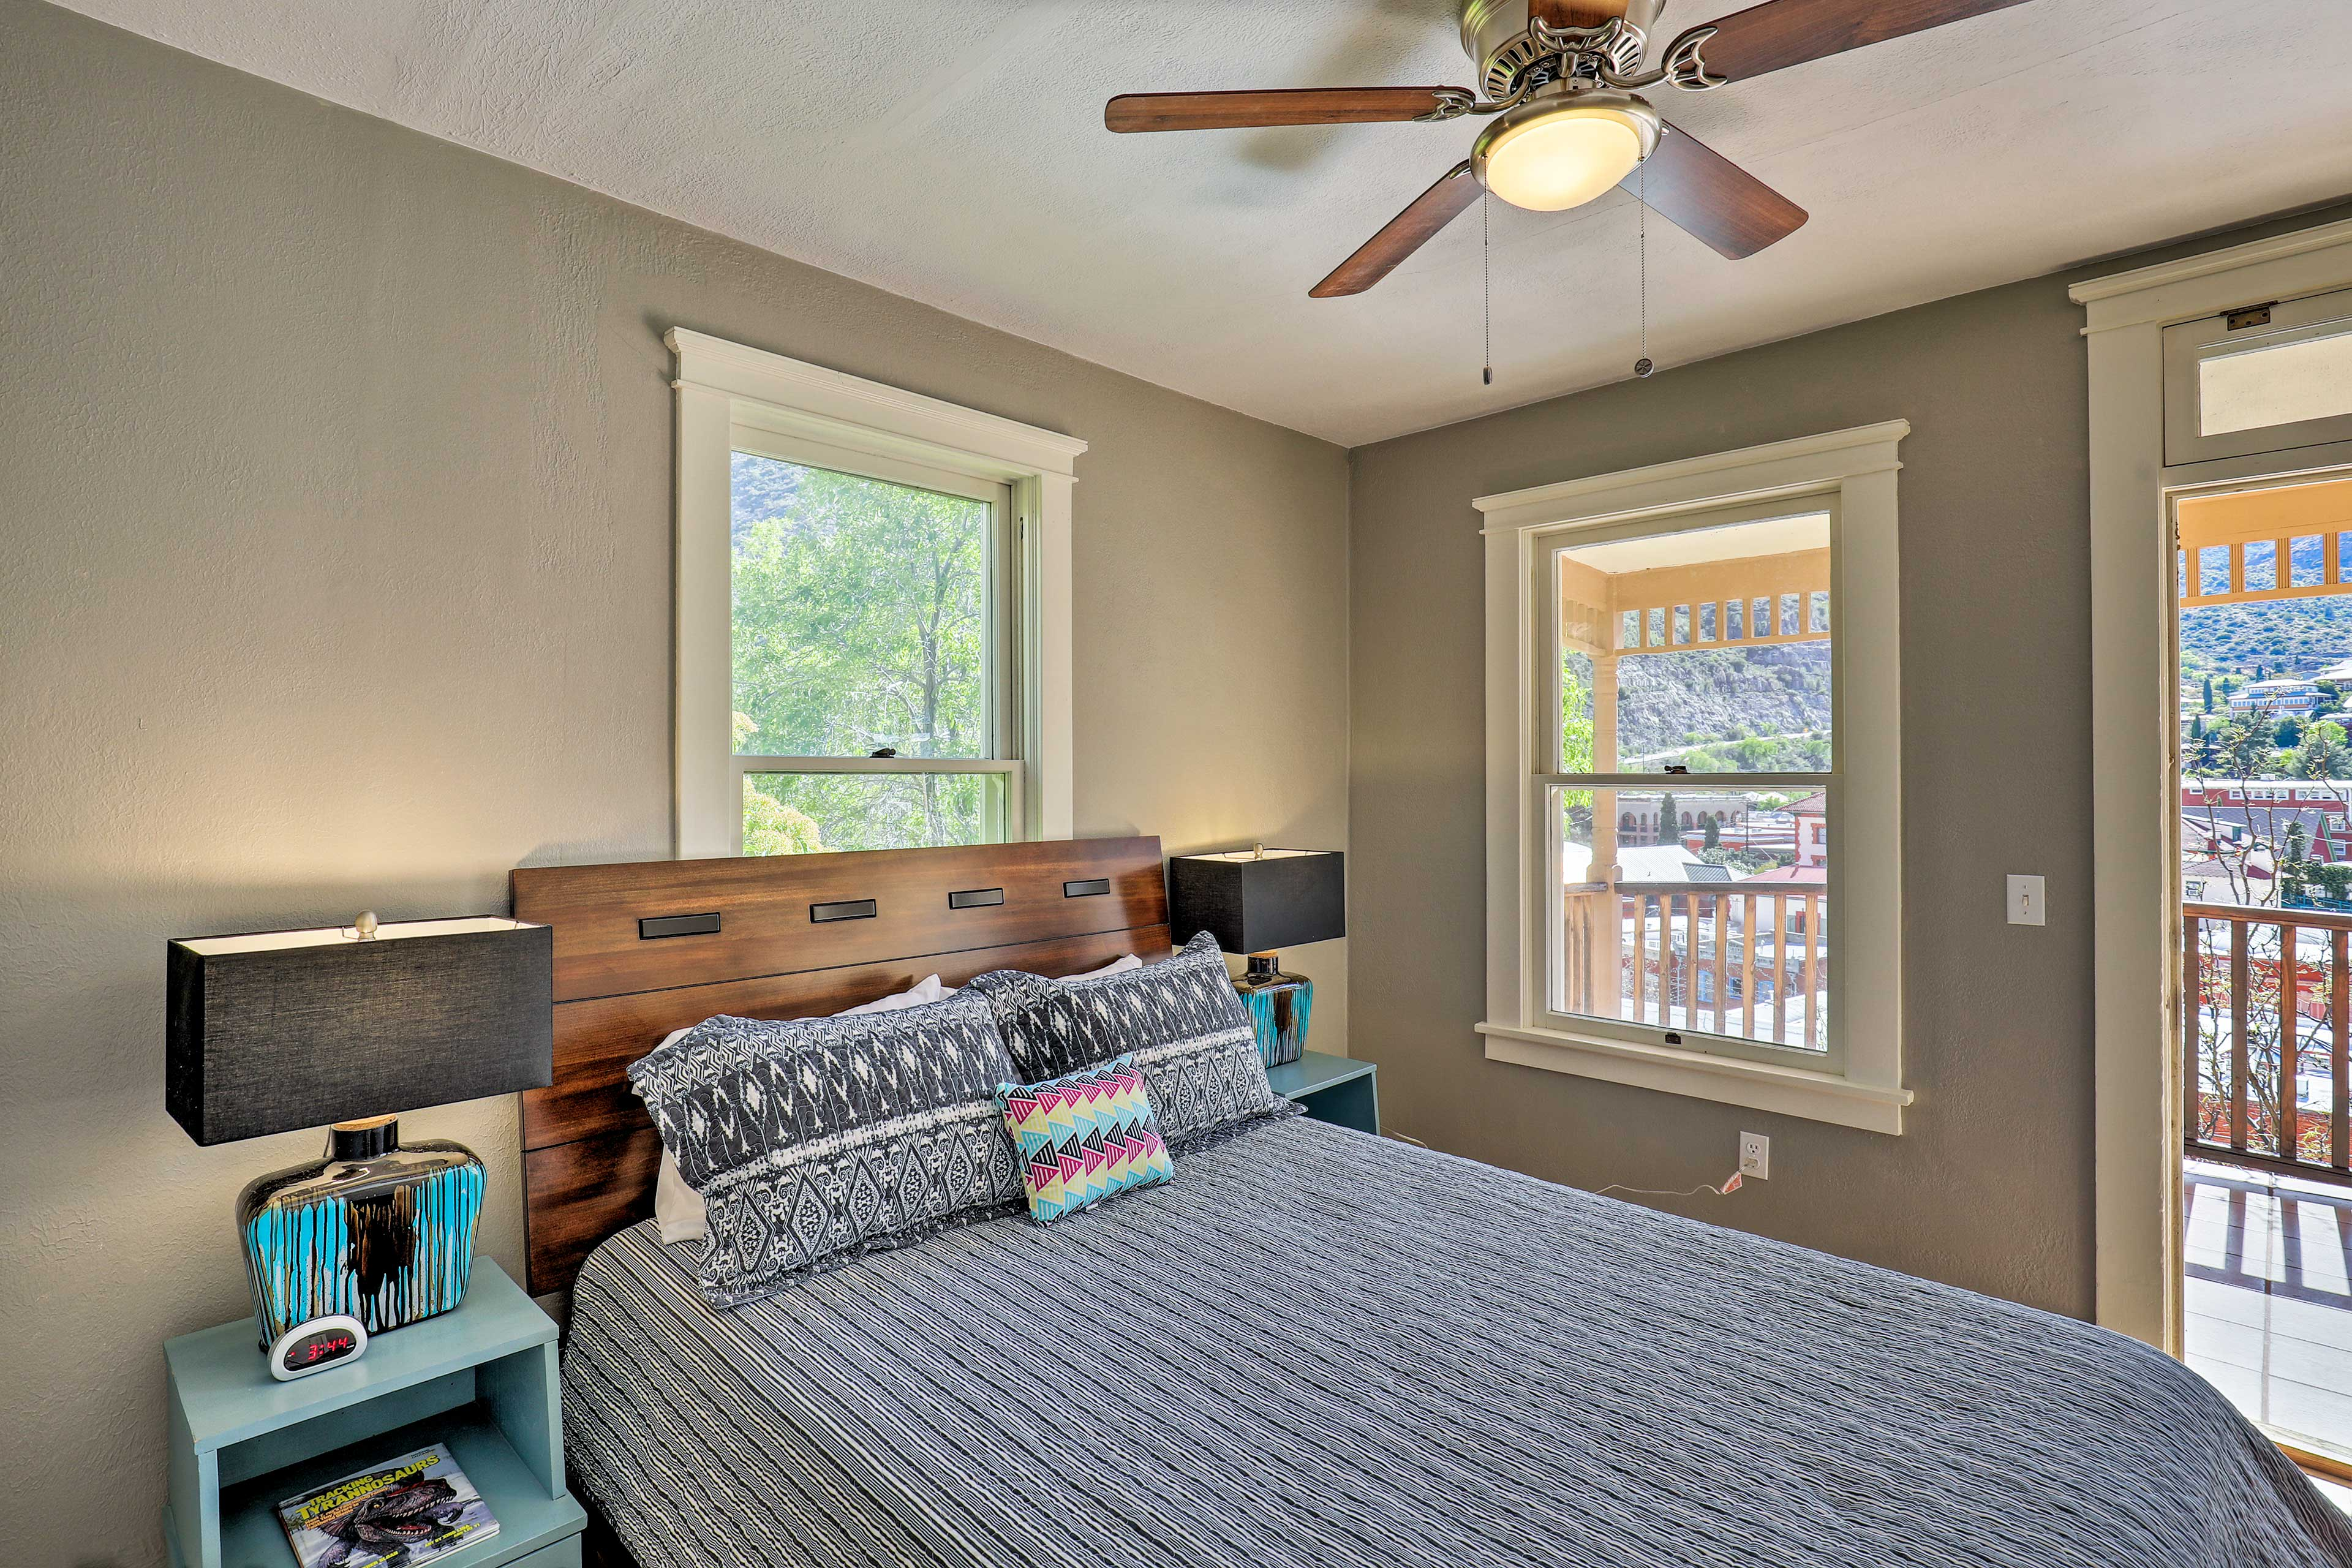 The ceiling fan will help keep you cool.